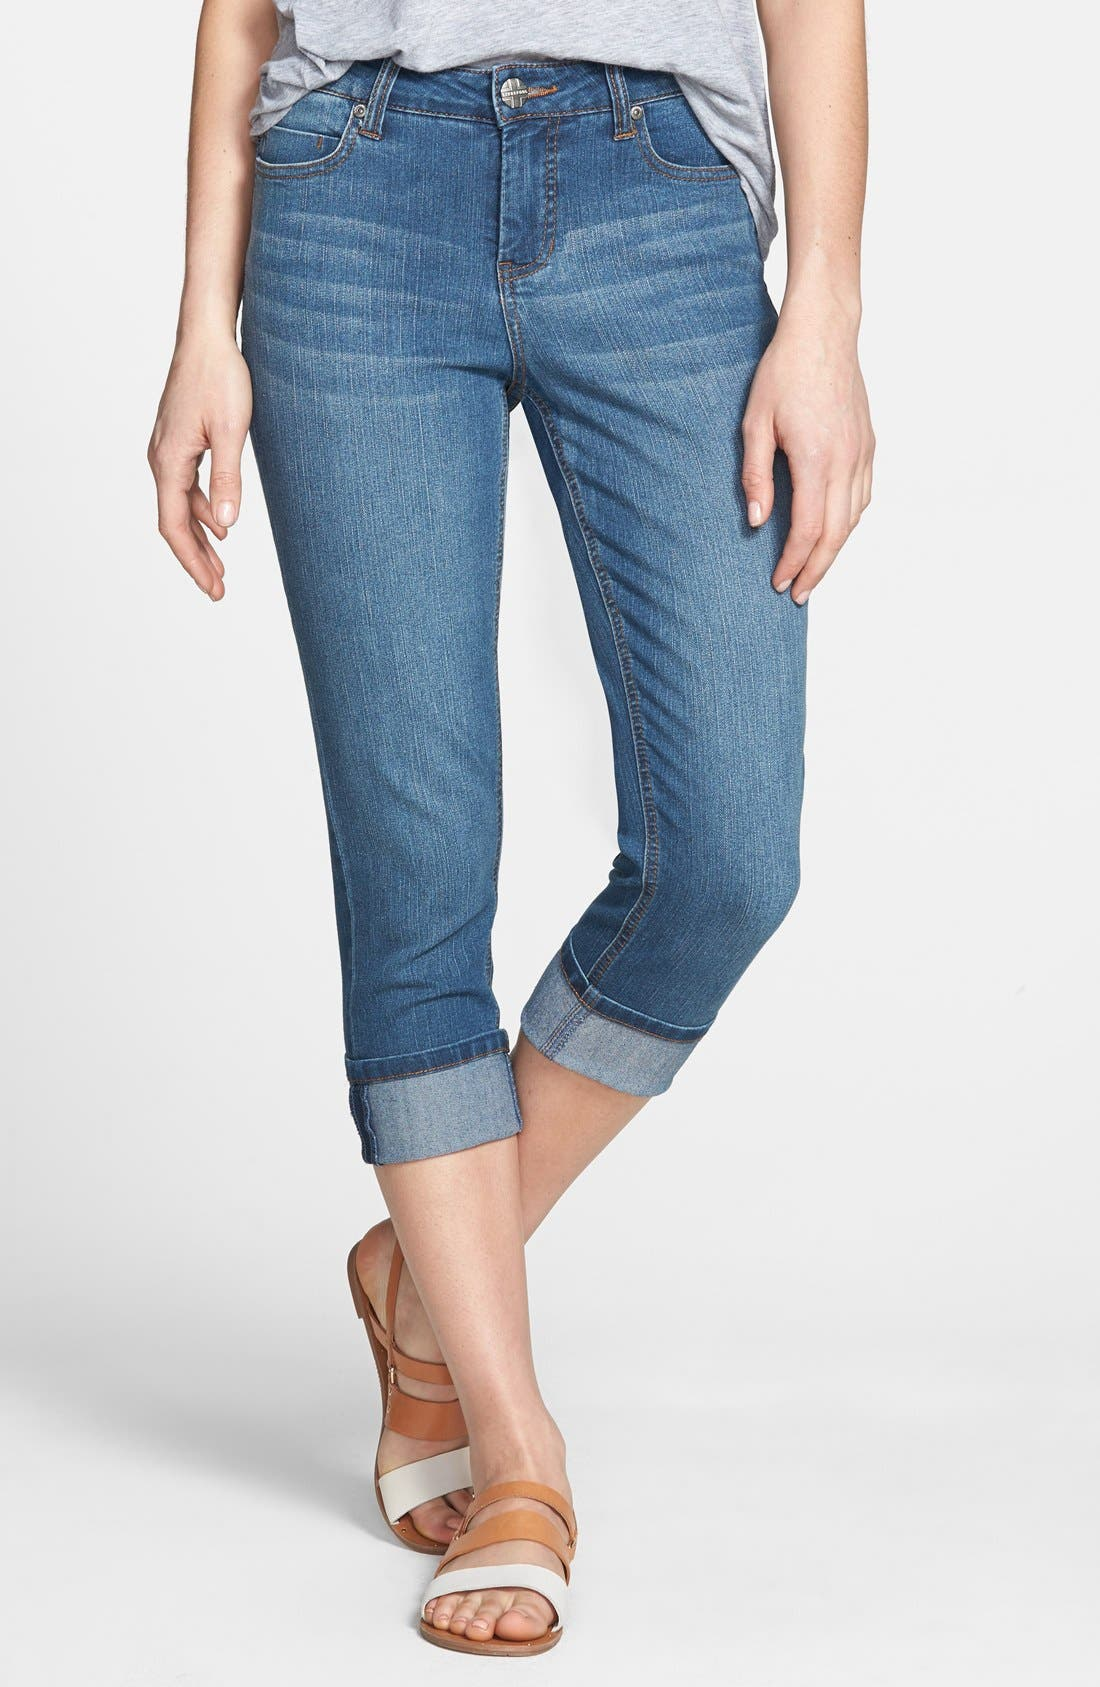 Alternate Image 1 Selected - Liverpool Jeans Company 'Michelle' Cuffed Stretch Capri Jeans